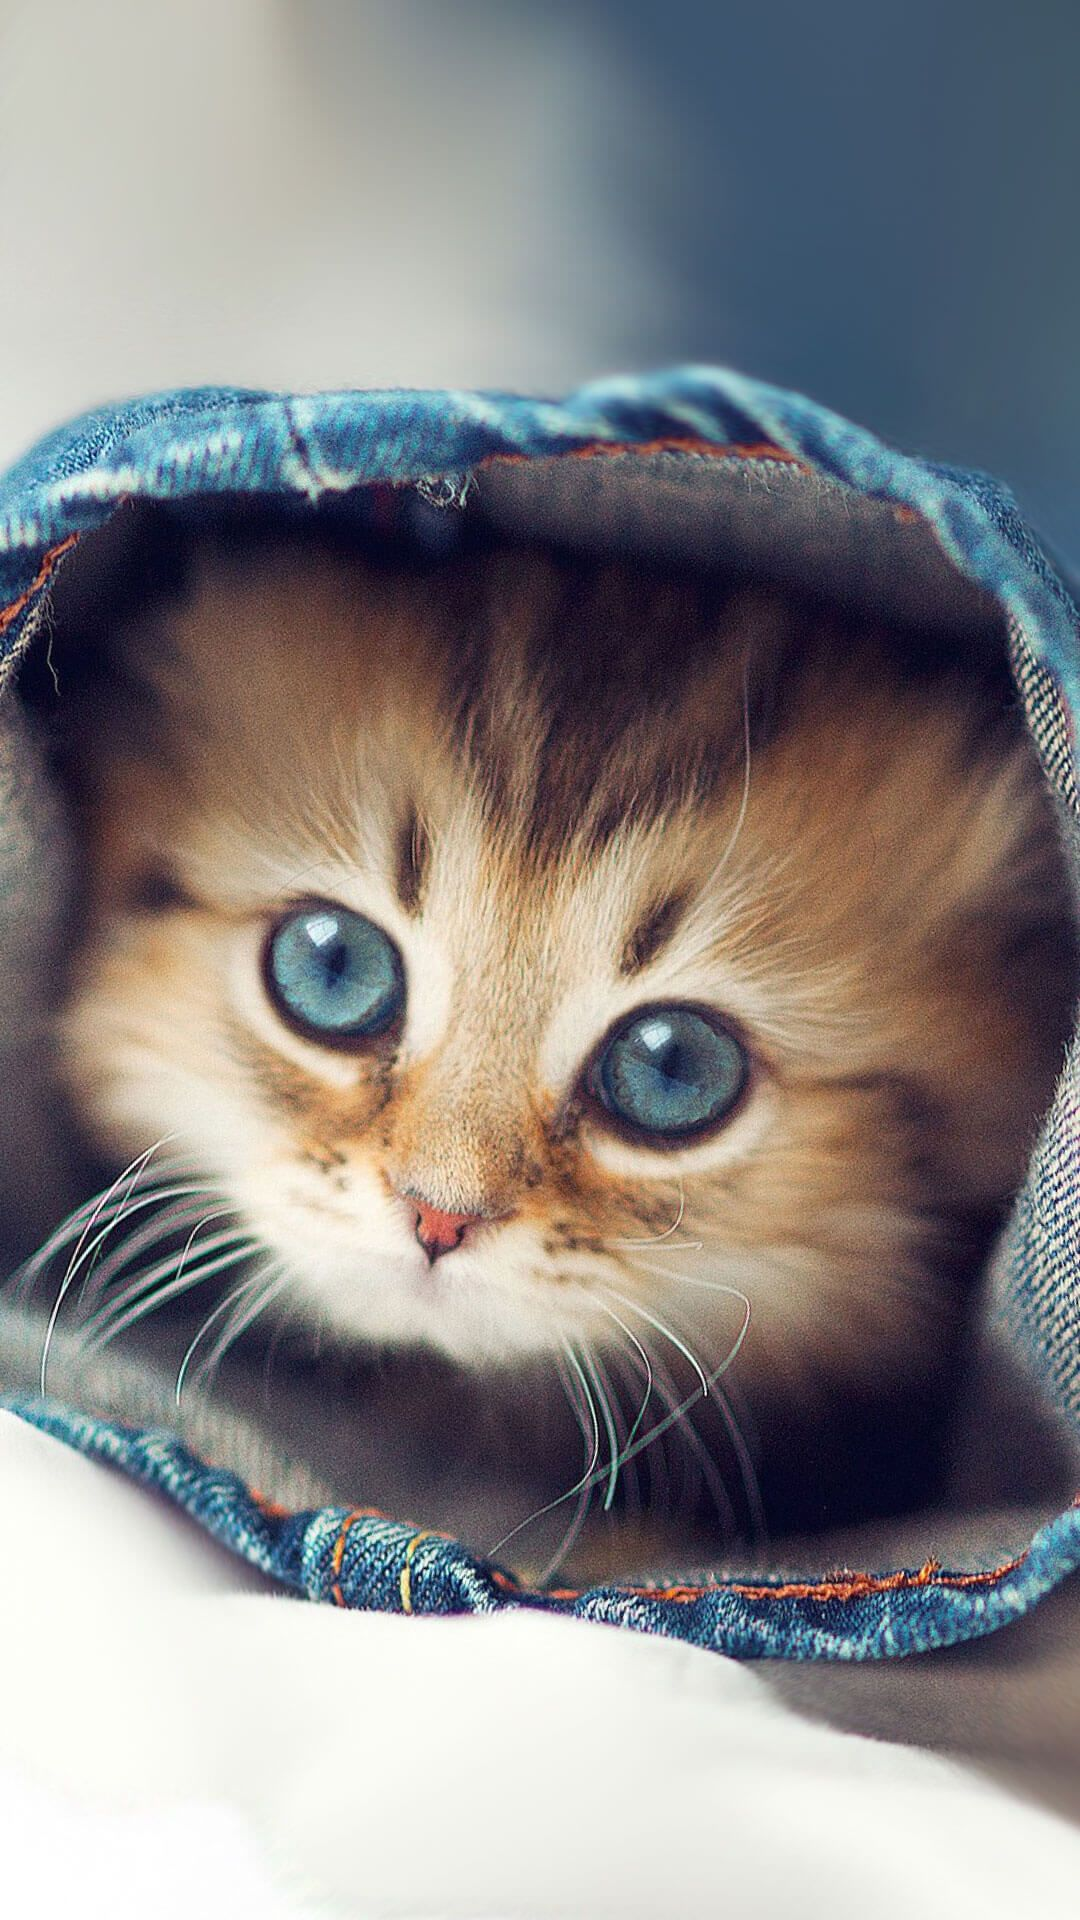 Cute kittens wallpapers for iphone 6 hd animal wallpaper - Cute baby animal desktop backgrounds ...